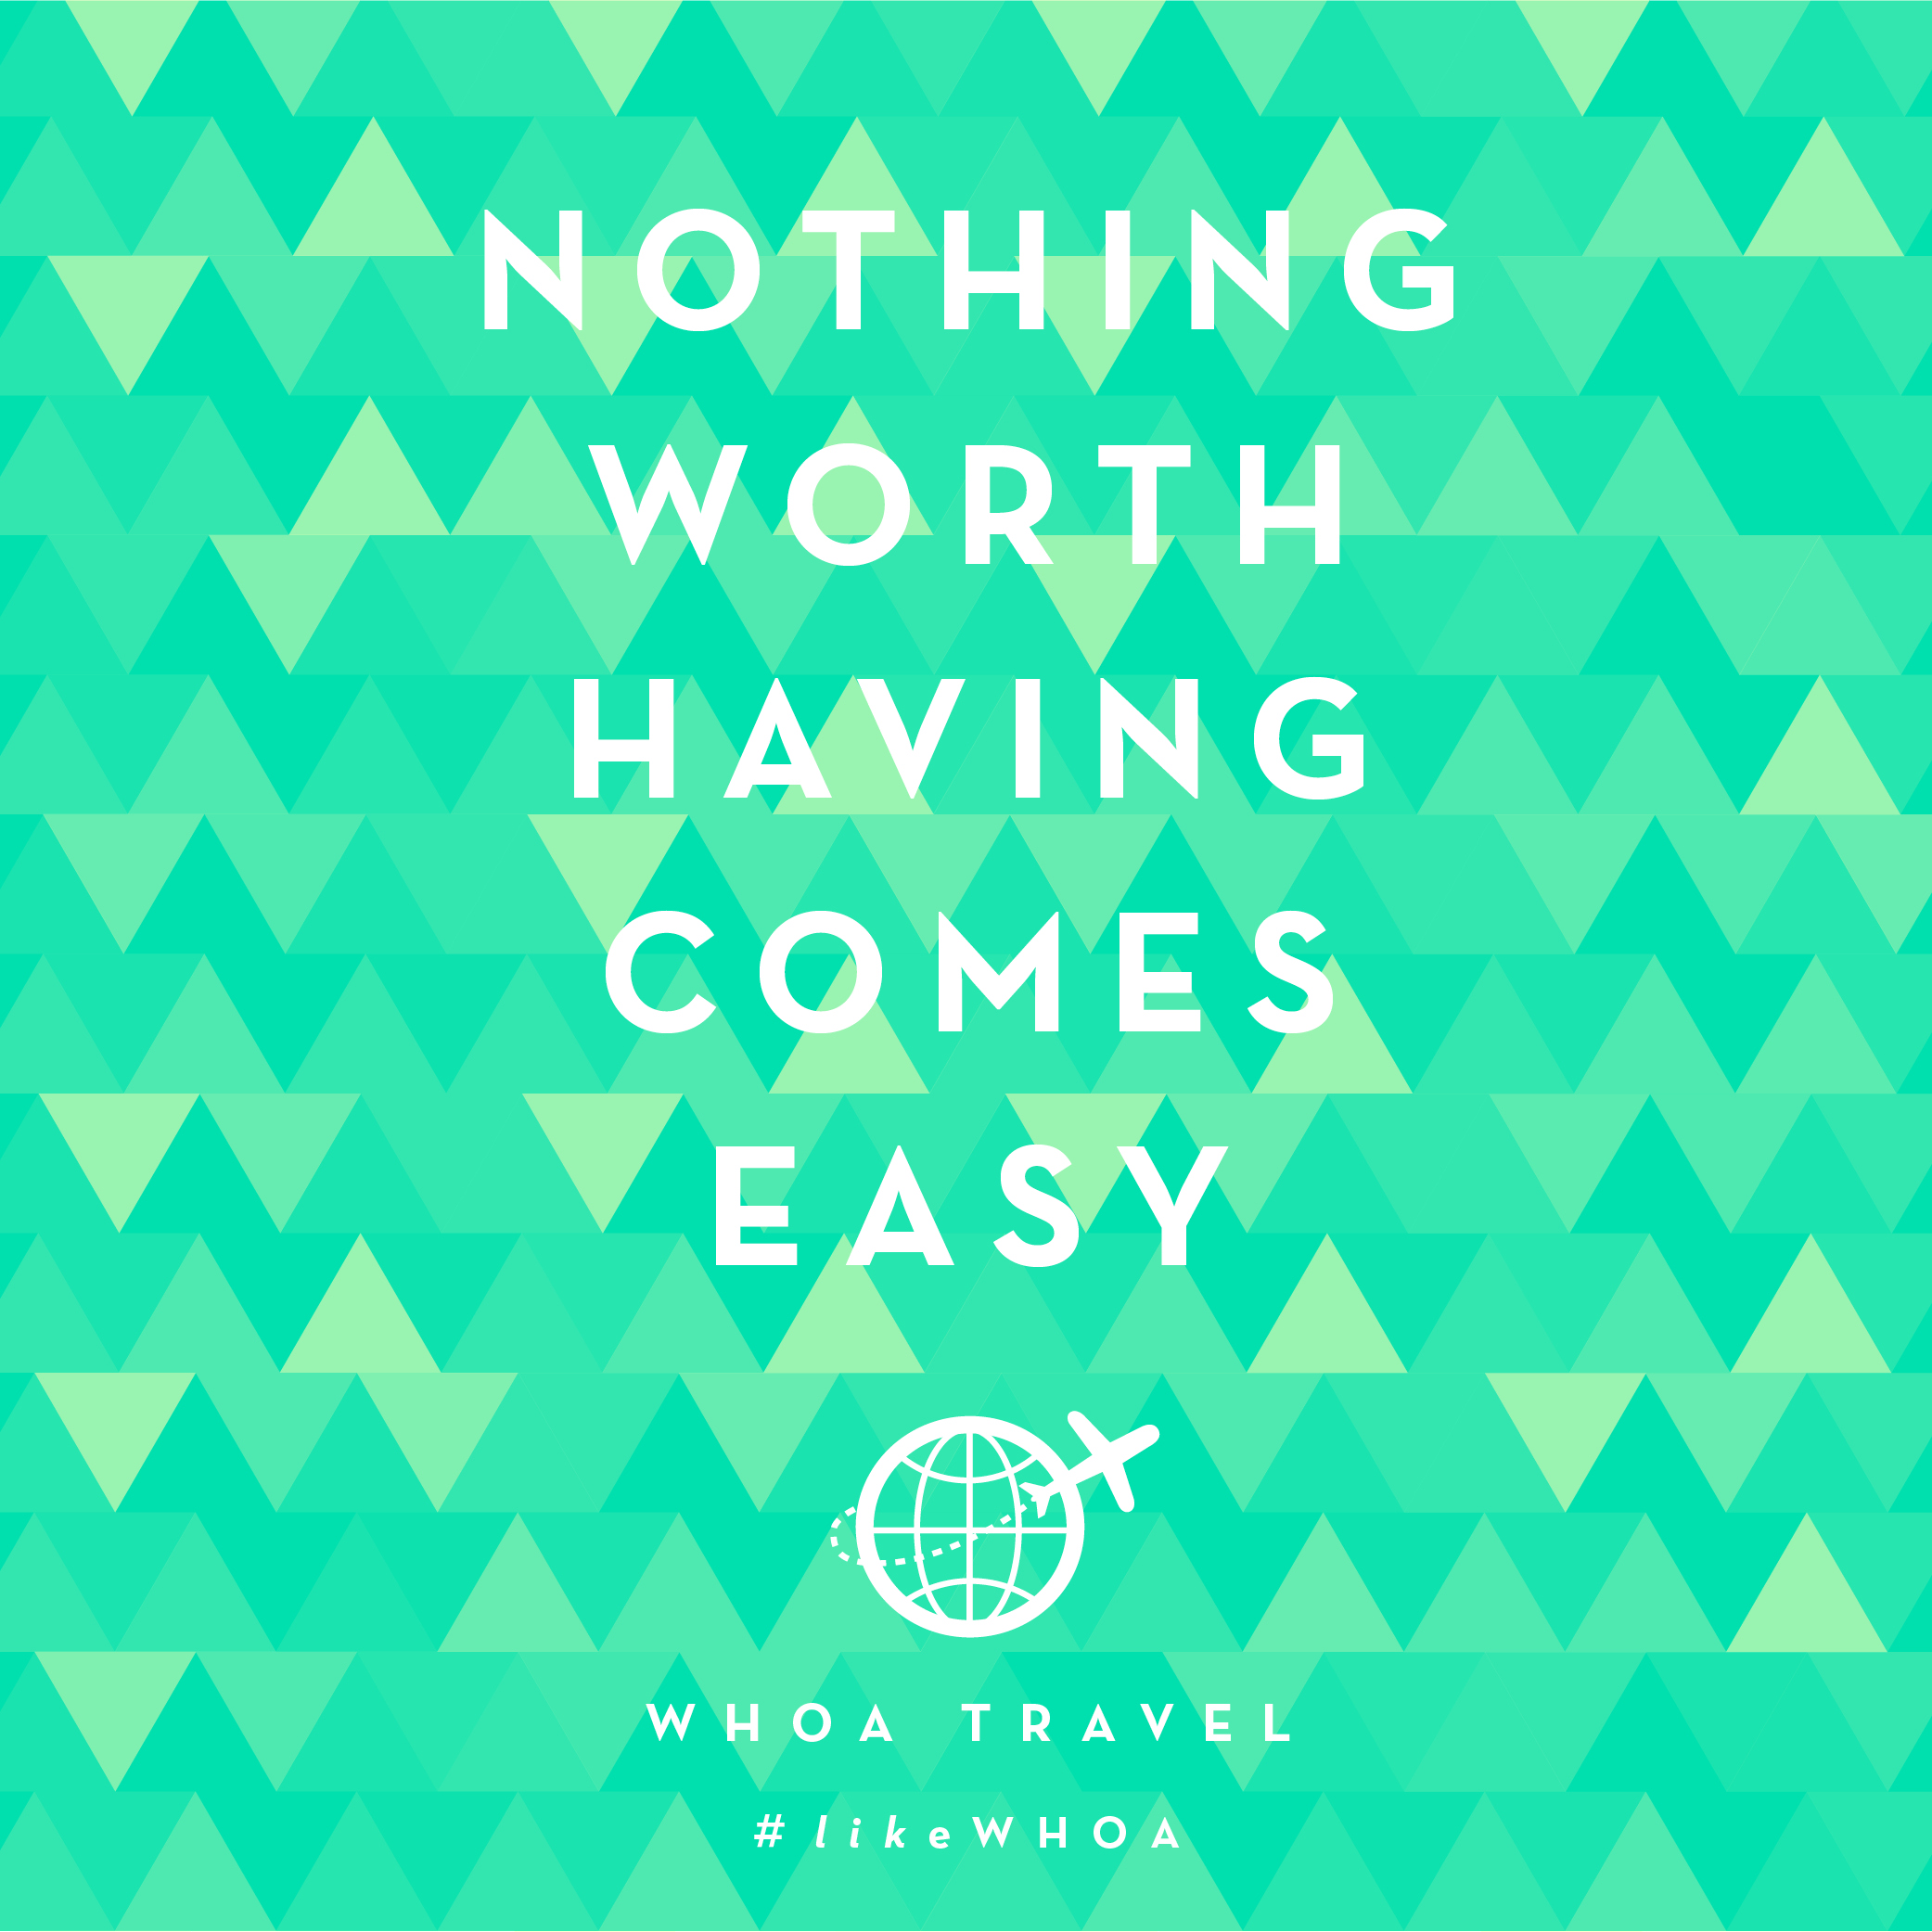 WHOA travel inspiration advenspiration nothing comes easy